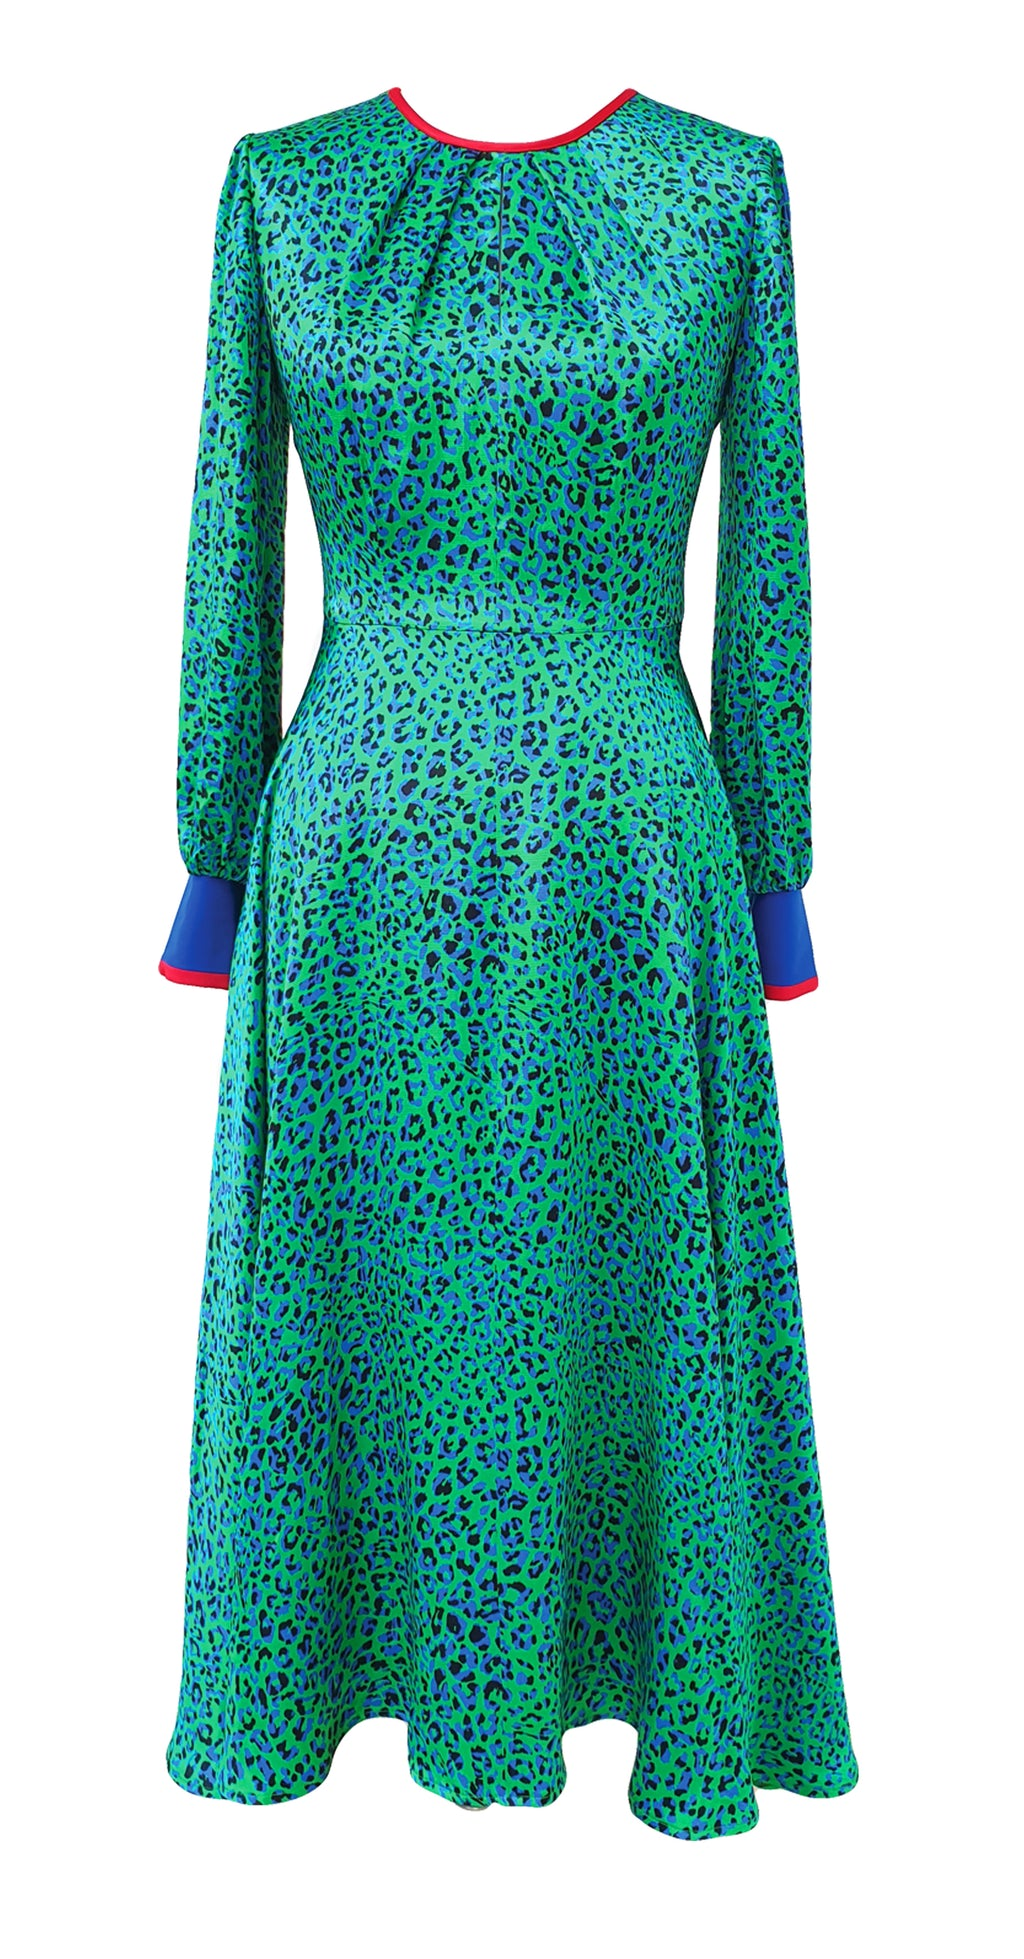 Diary of Jane Dress DRC330 Funky Leopard Print